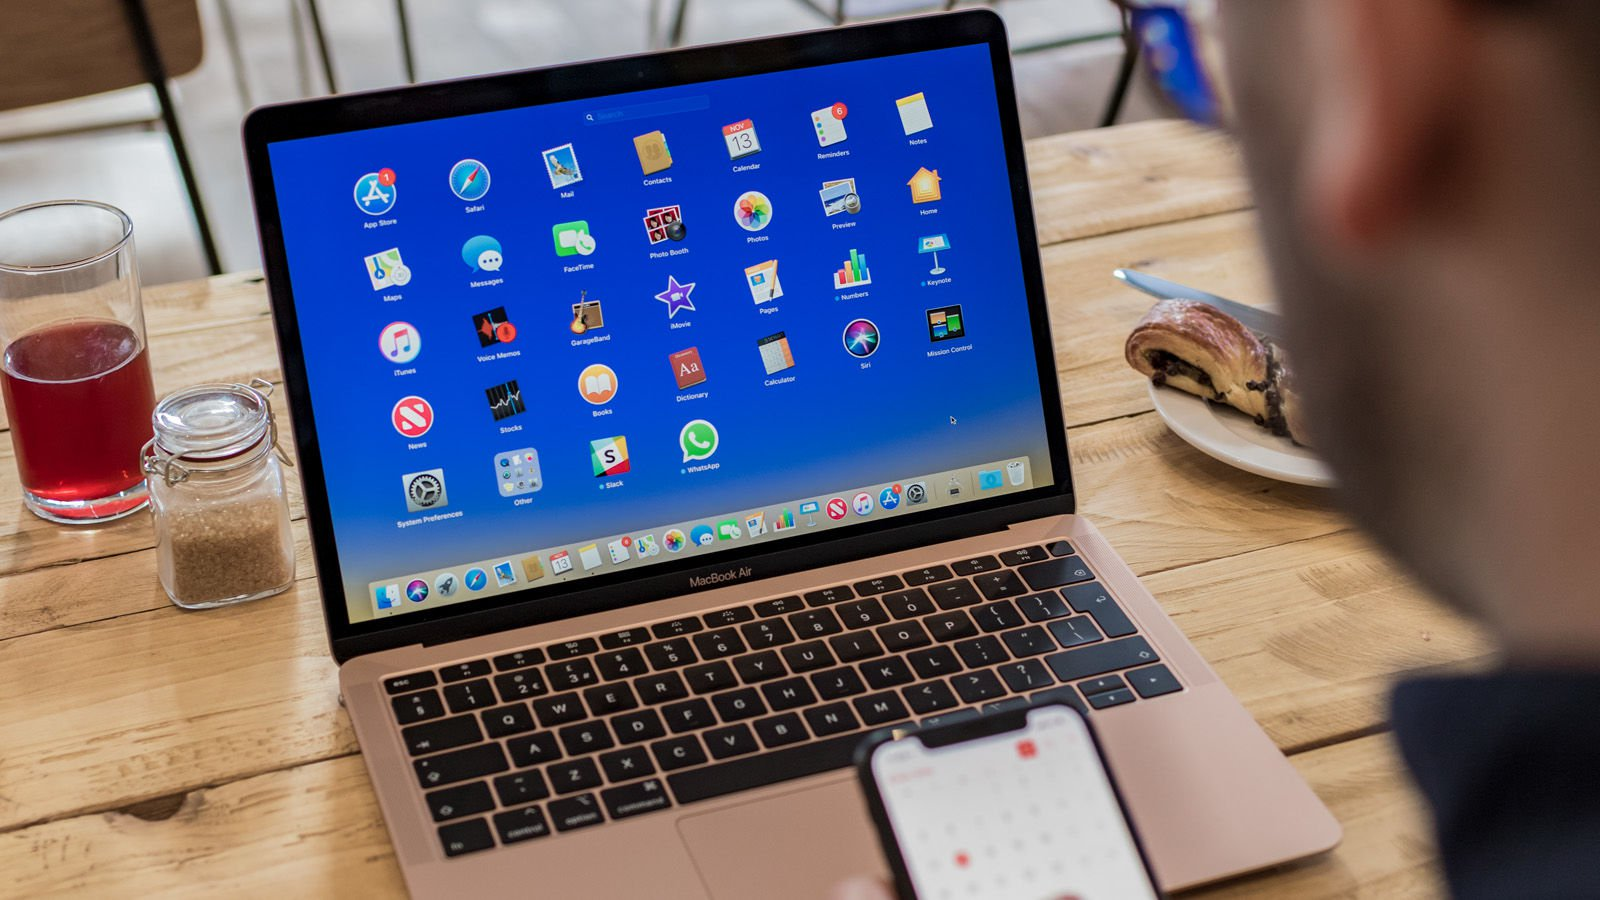 Pantalla retina del MacBook Air 2018